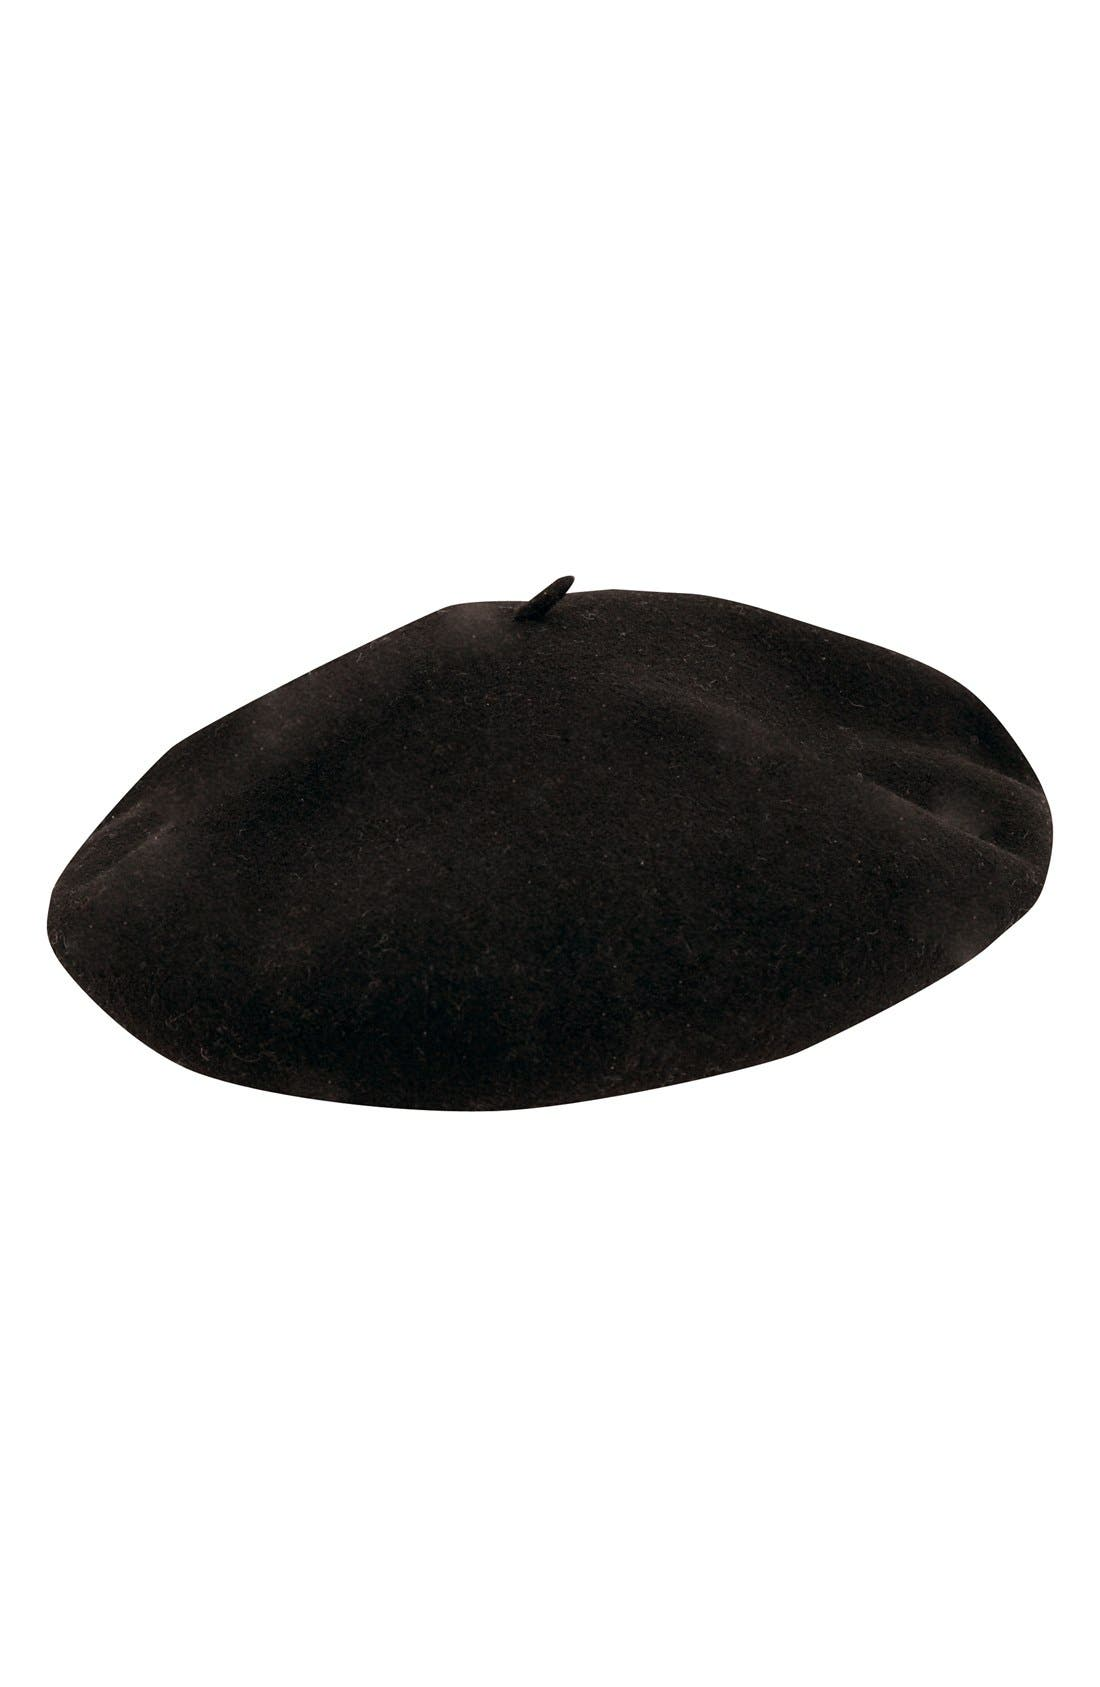 'Basque' Beret,                             Main thumbnail 1, color,                             Black